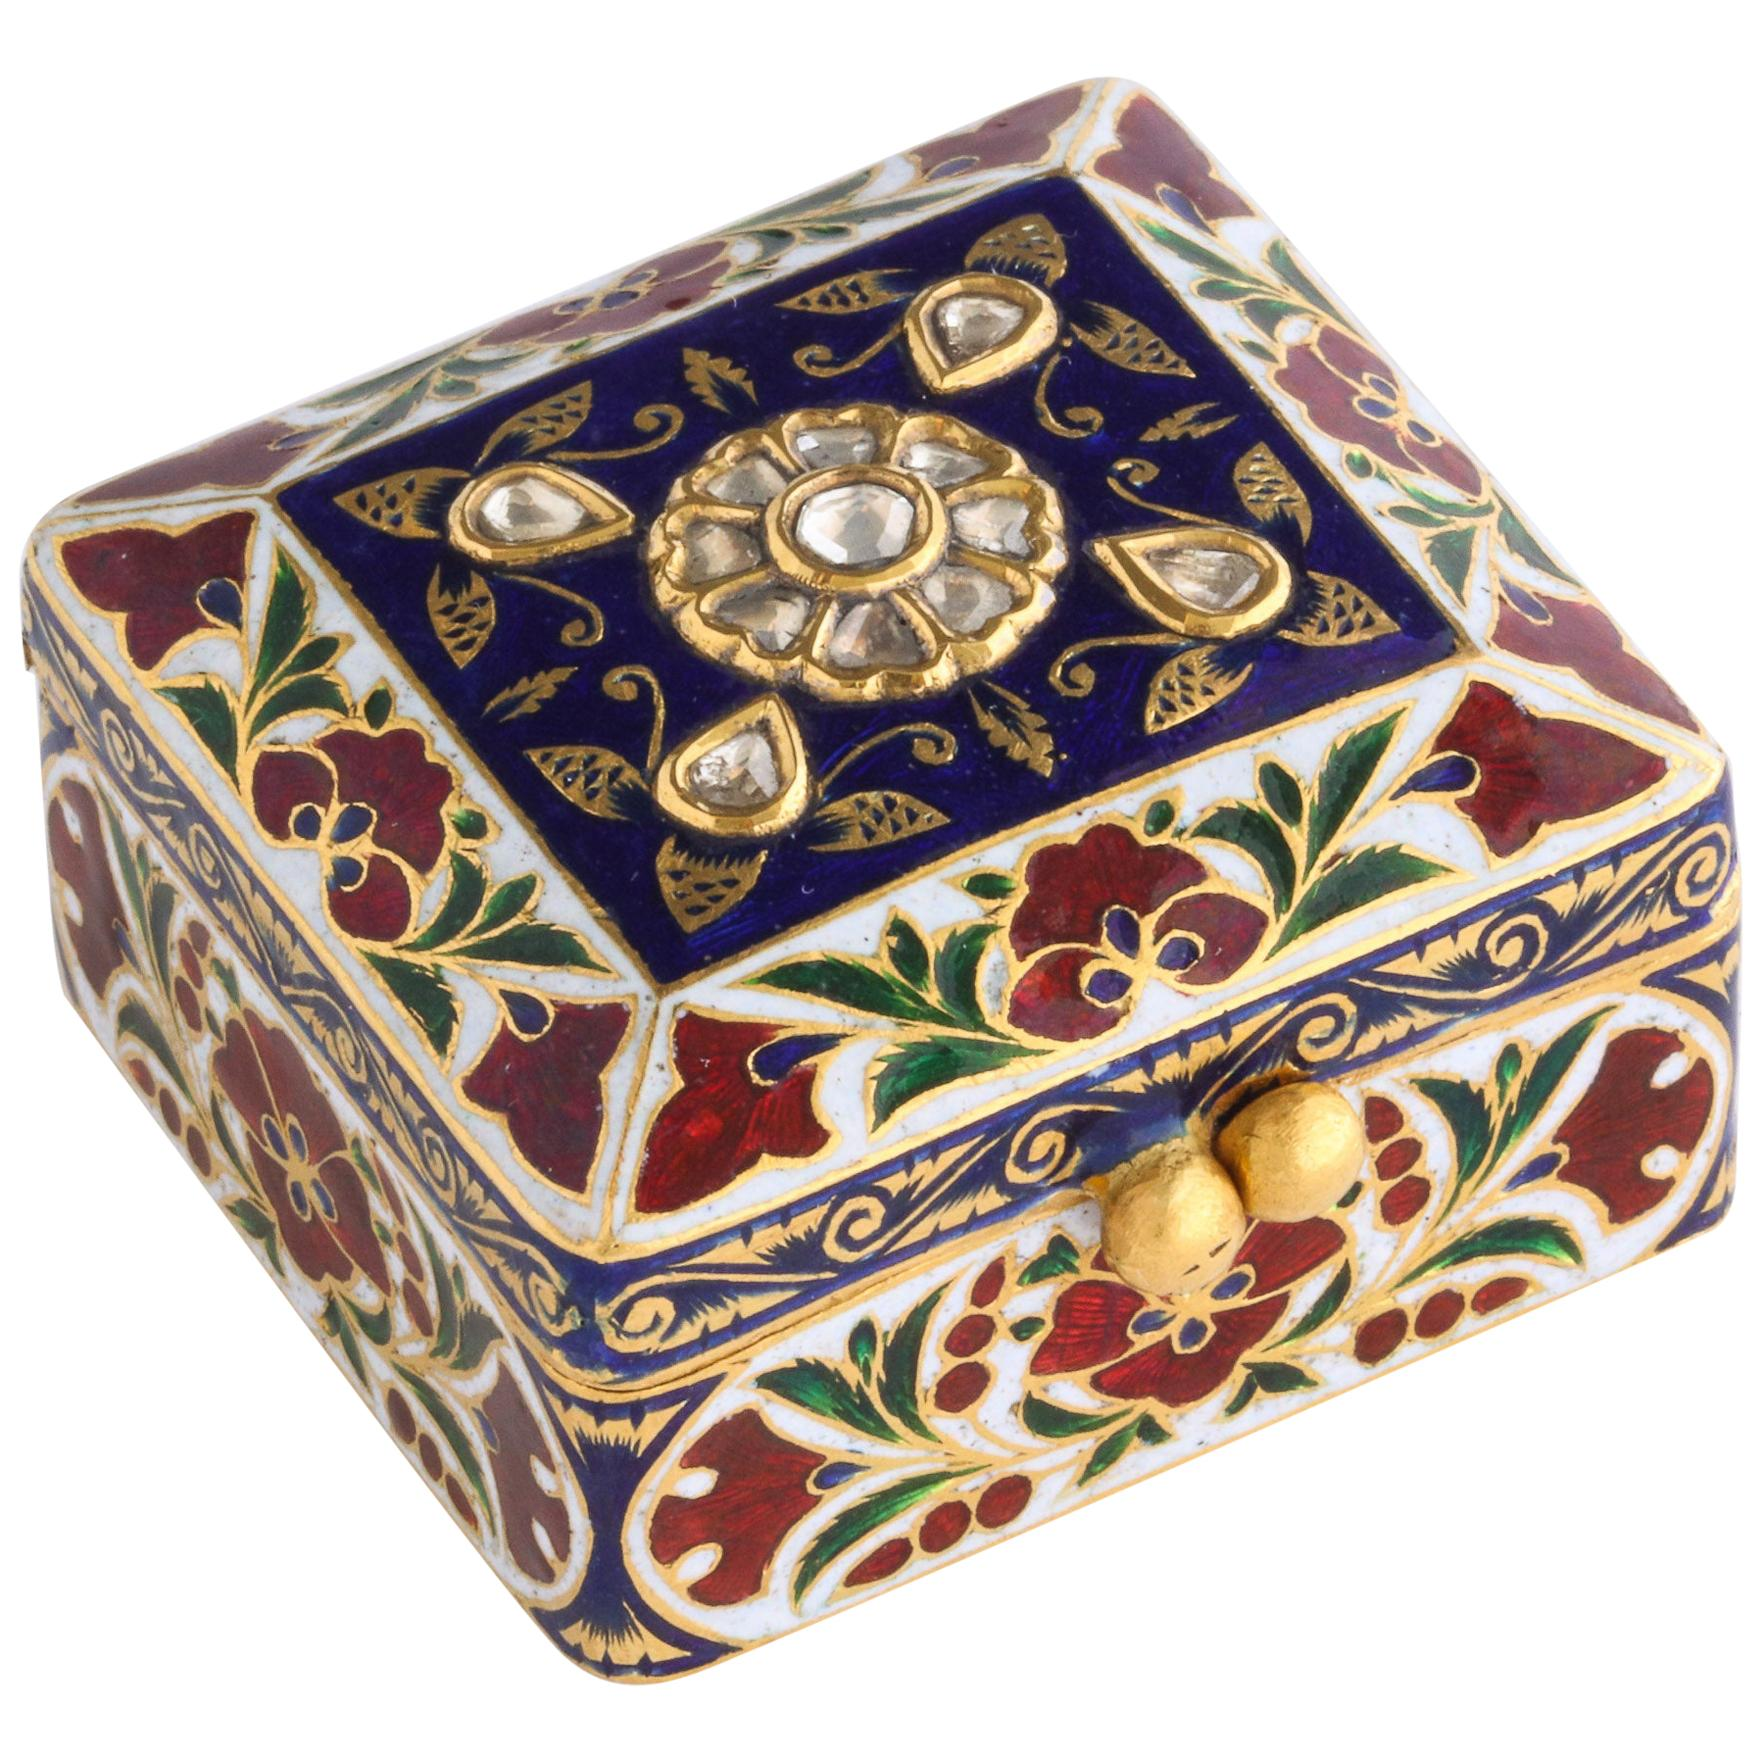 Gold Snuff Boxes and Tobacco Boxes - 74 For Sale at 1stdibs